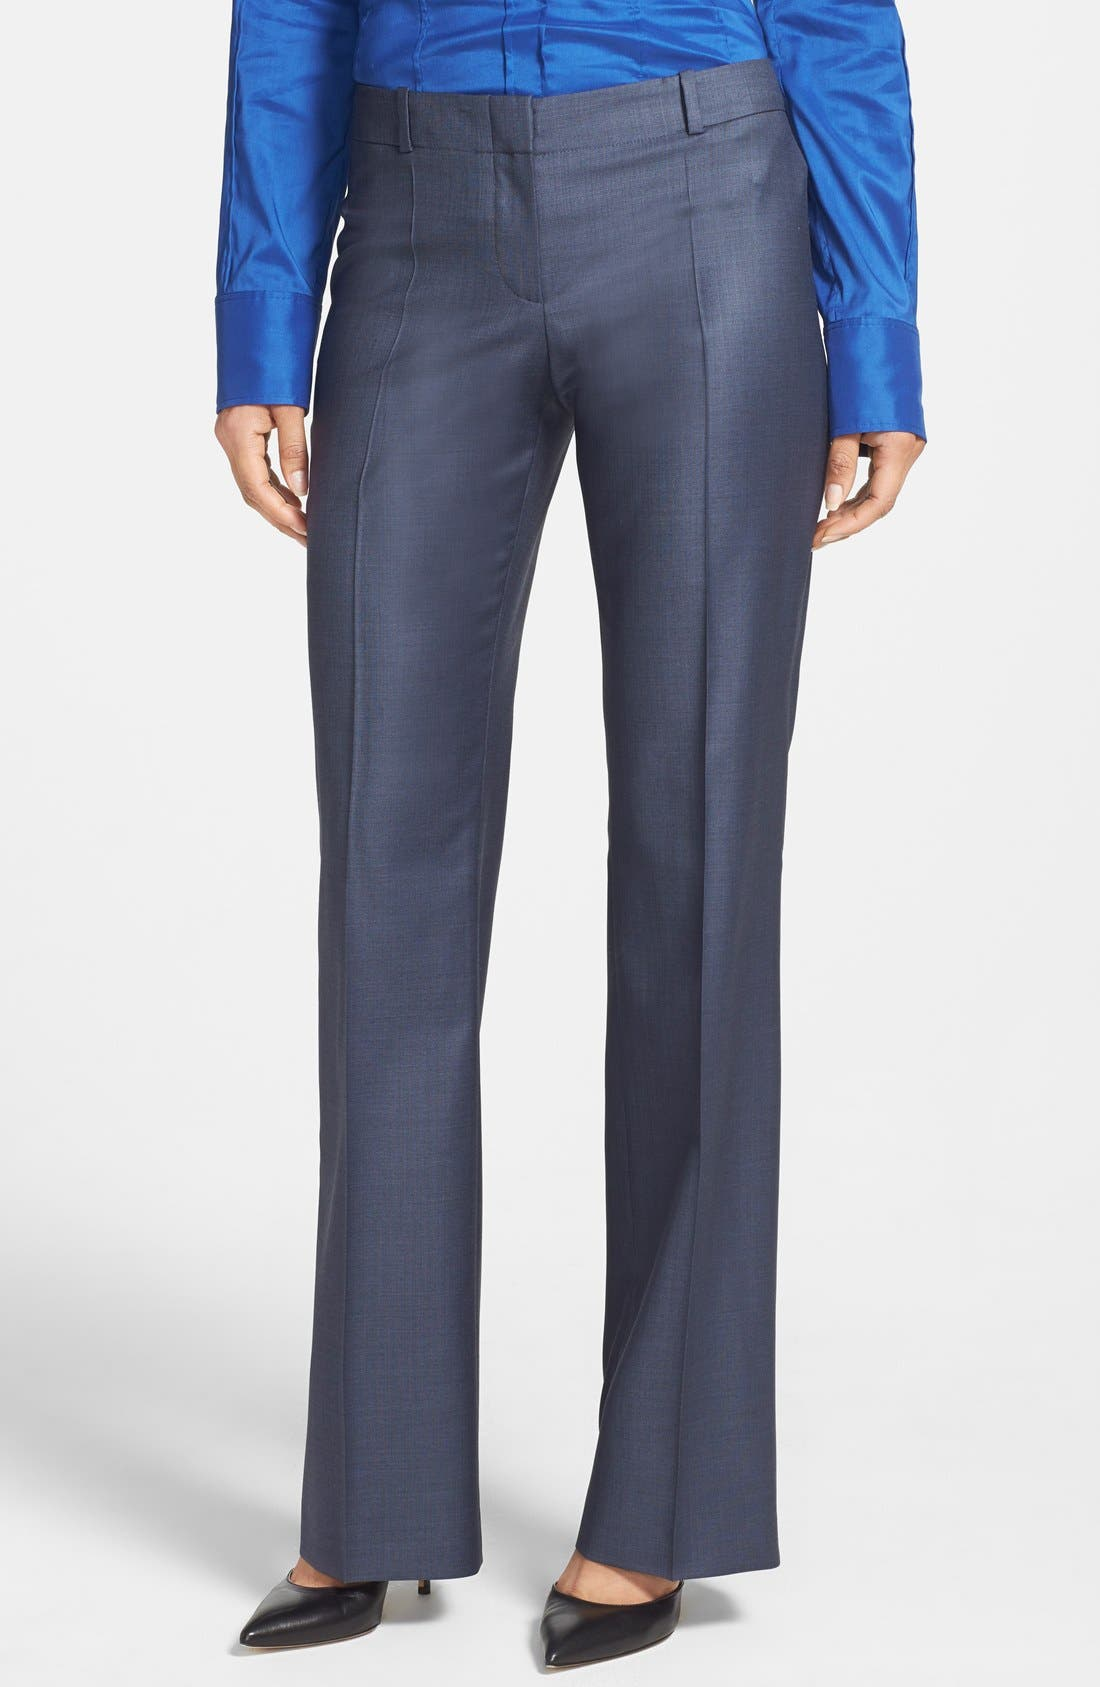 'Temuna' Wool Blend Suiting Trousers,                             Main thumbnail 1, color,                             Electric Blue Fantasy Melange